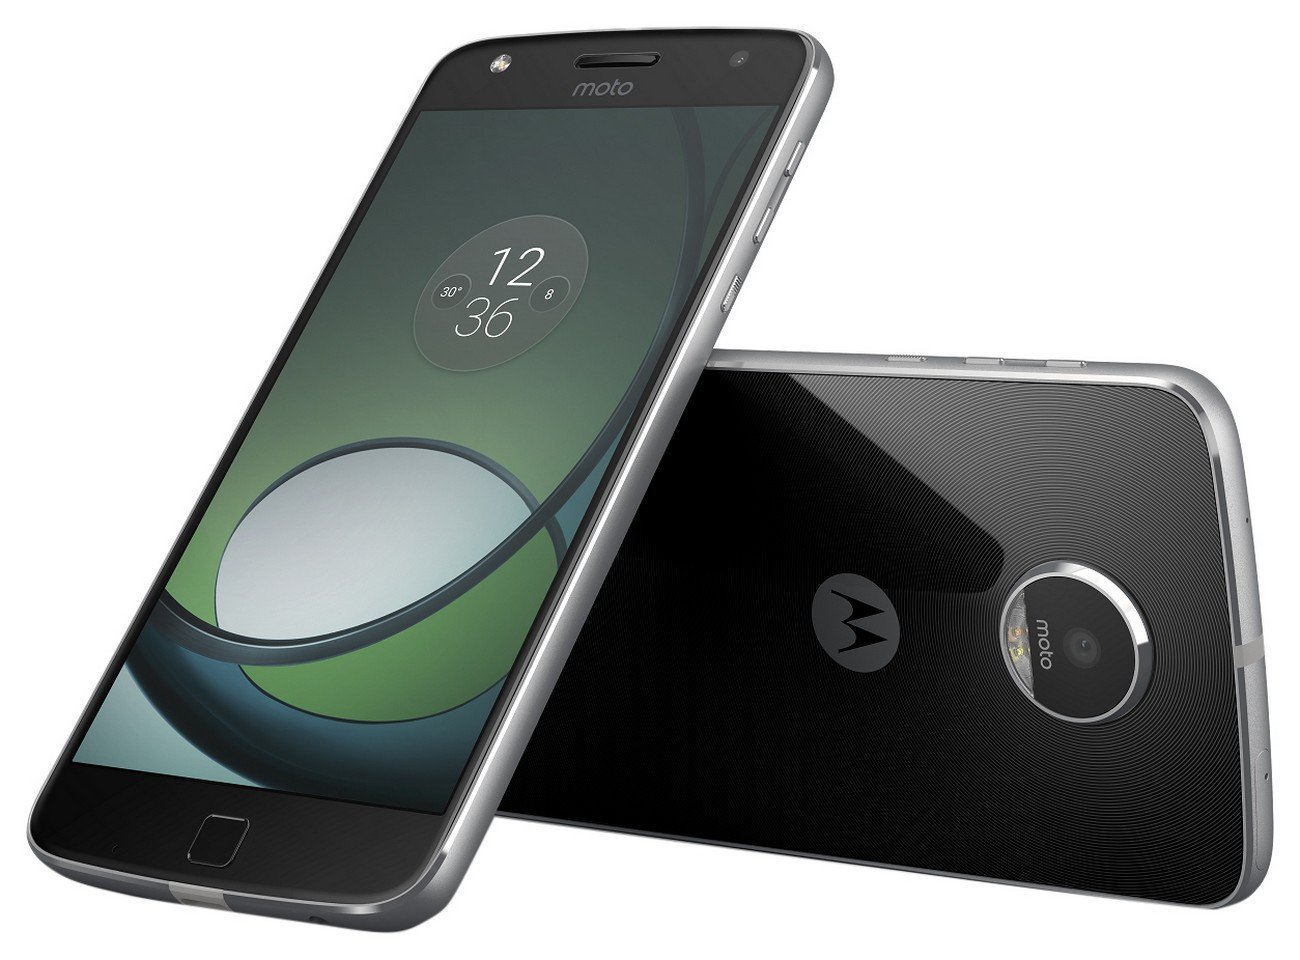 Moto z moto z play now available in india price specifications and - Motorola Moto Z Play Photos Add Photo Help Us Fill The Void Upload A Picture